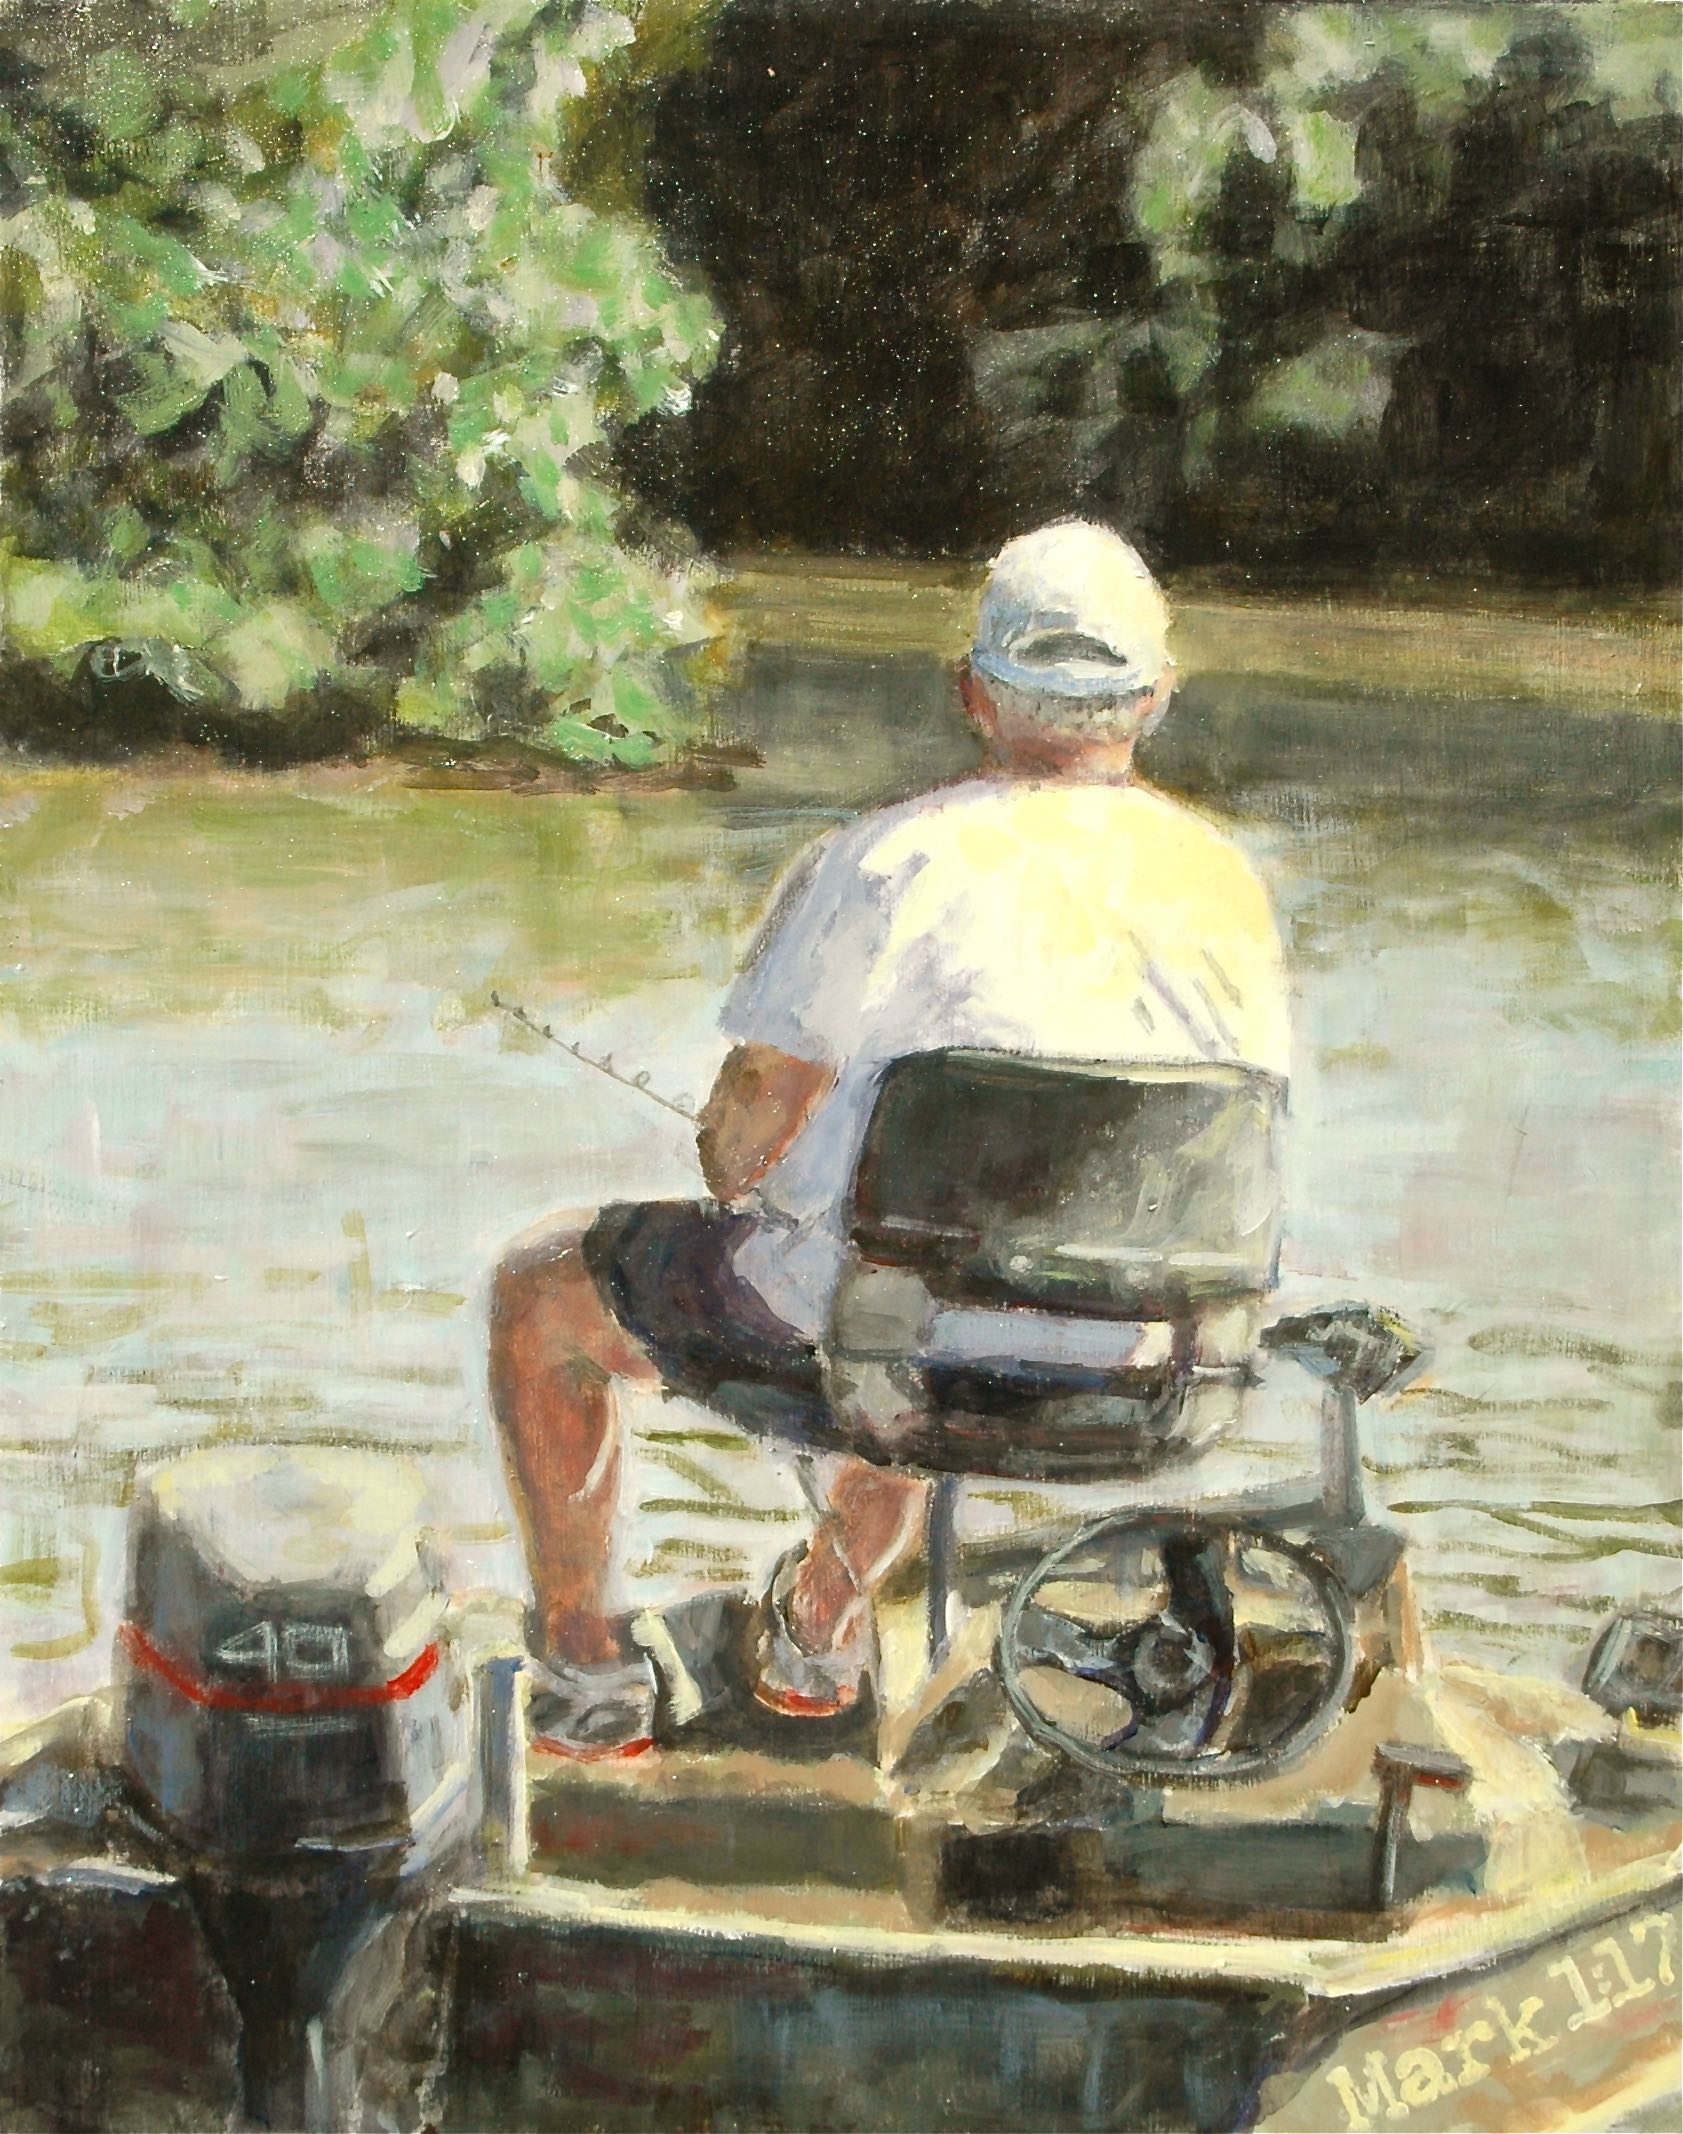 fishing-Christ-christian+art-